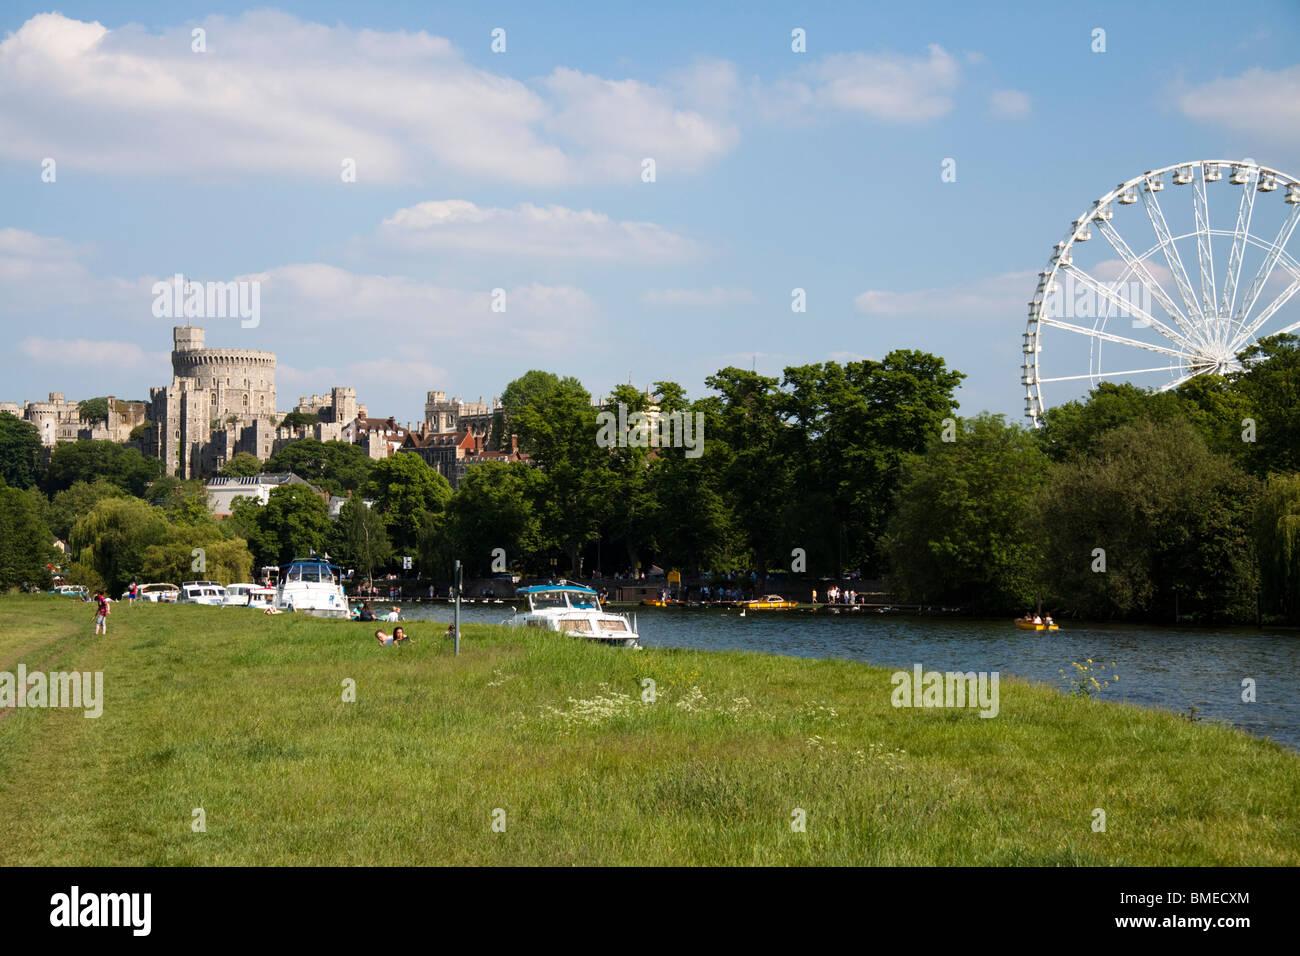 Windsor Castle und das Royal Windsor-Rad aus der Brocas, Eton, Berkshire, England, UK Stockbild